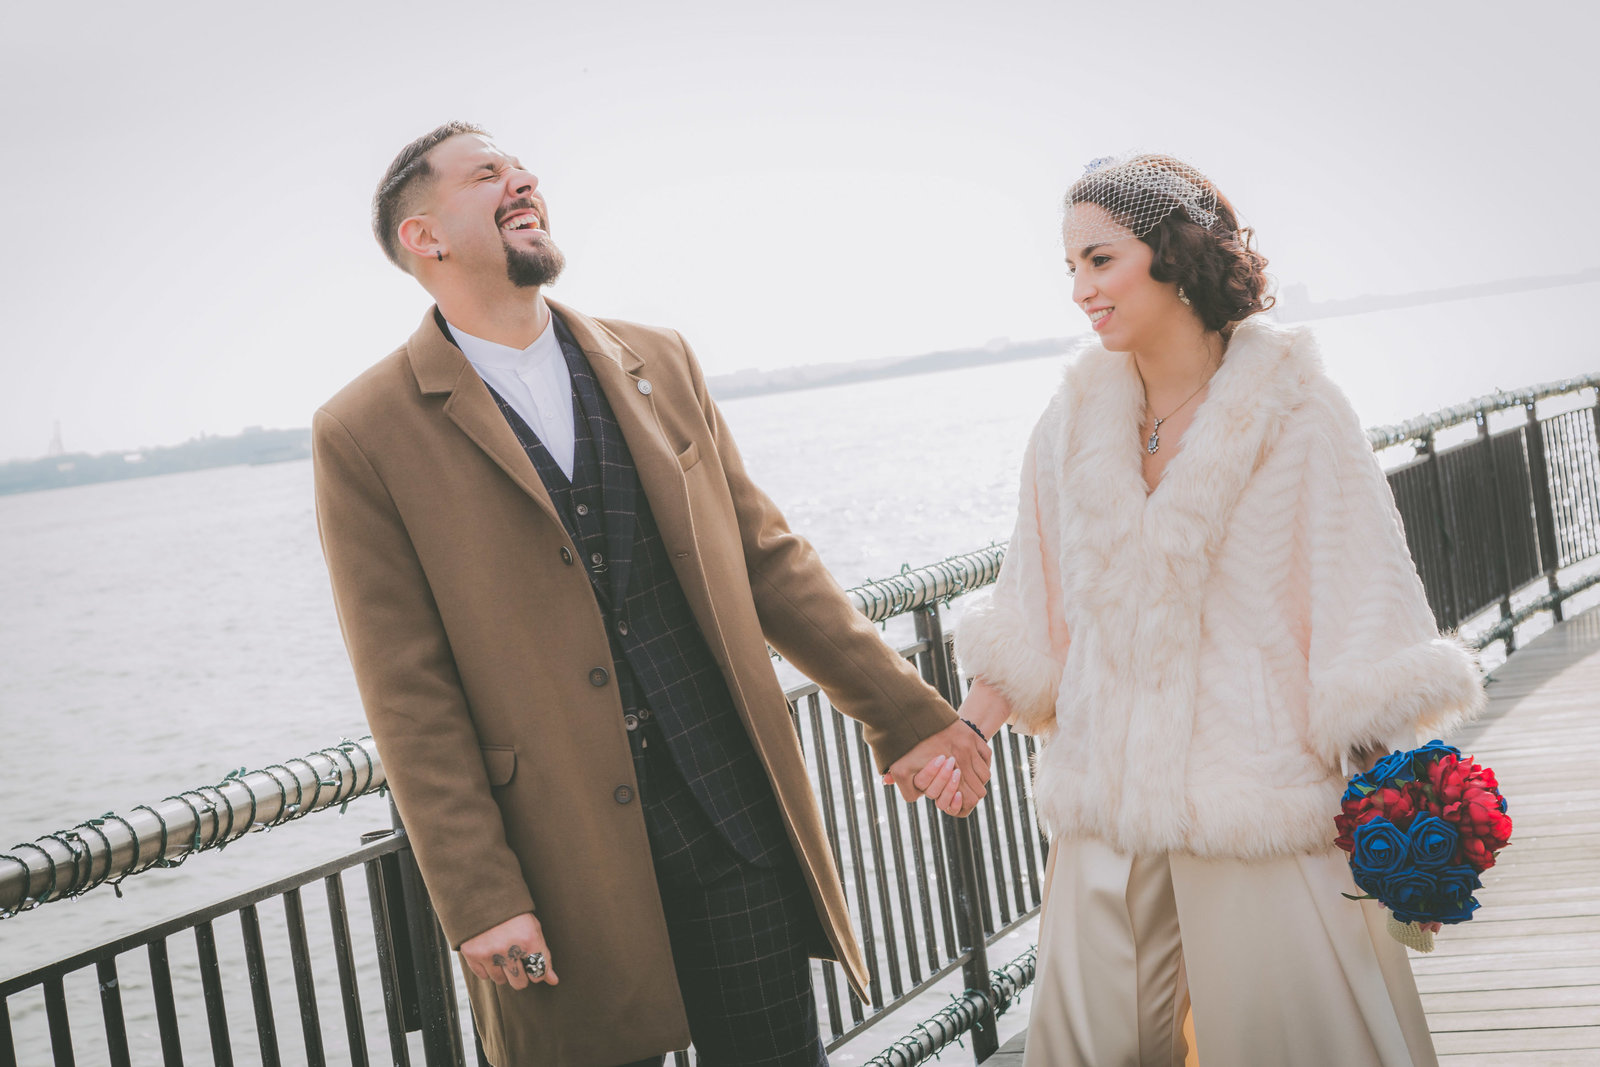 A groom laughs while wife looks on during Jersey City wedding.